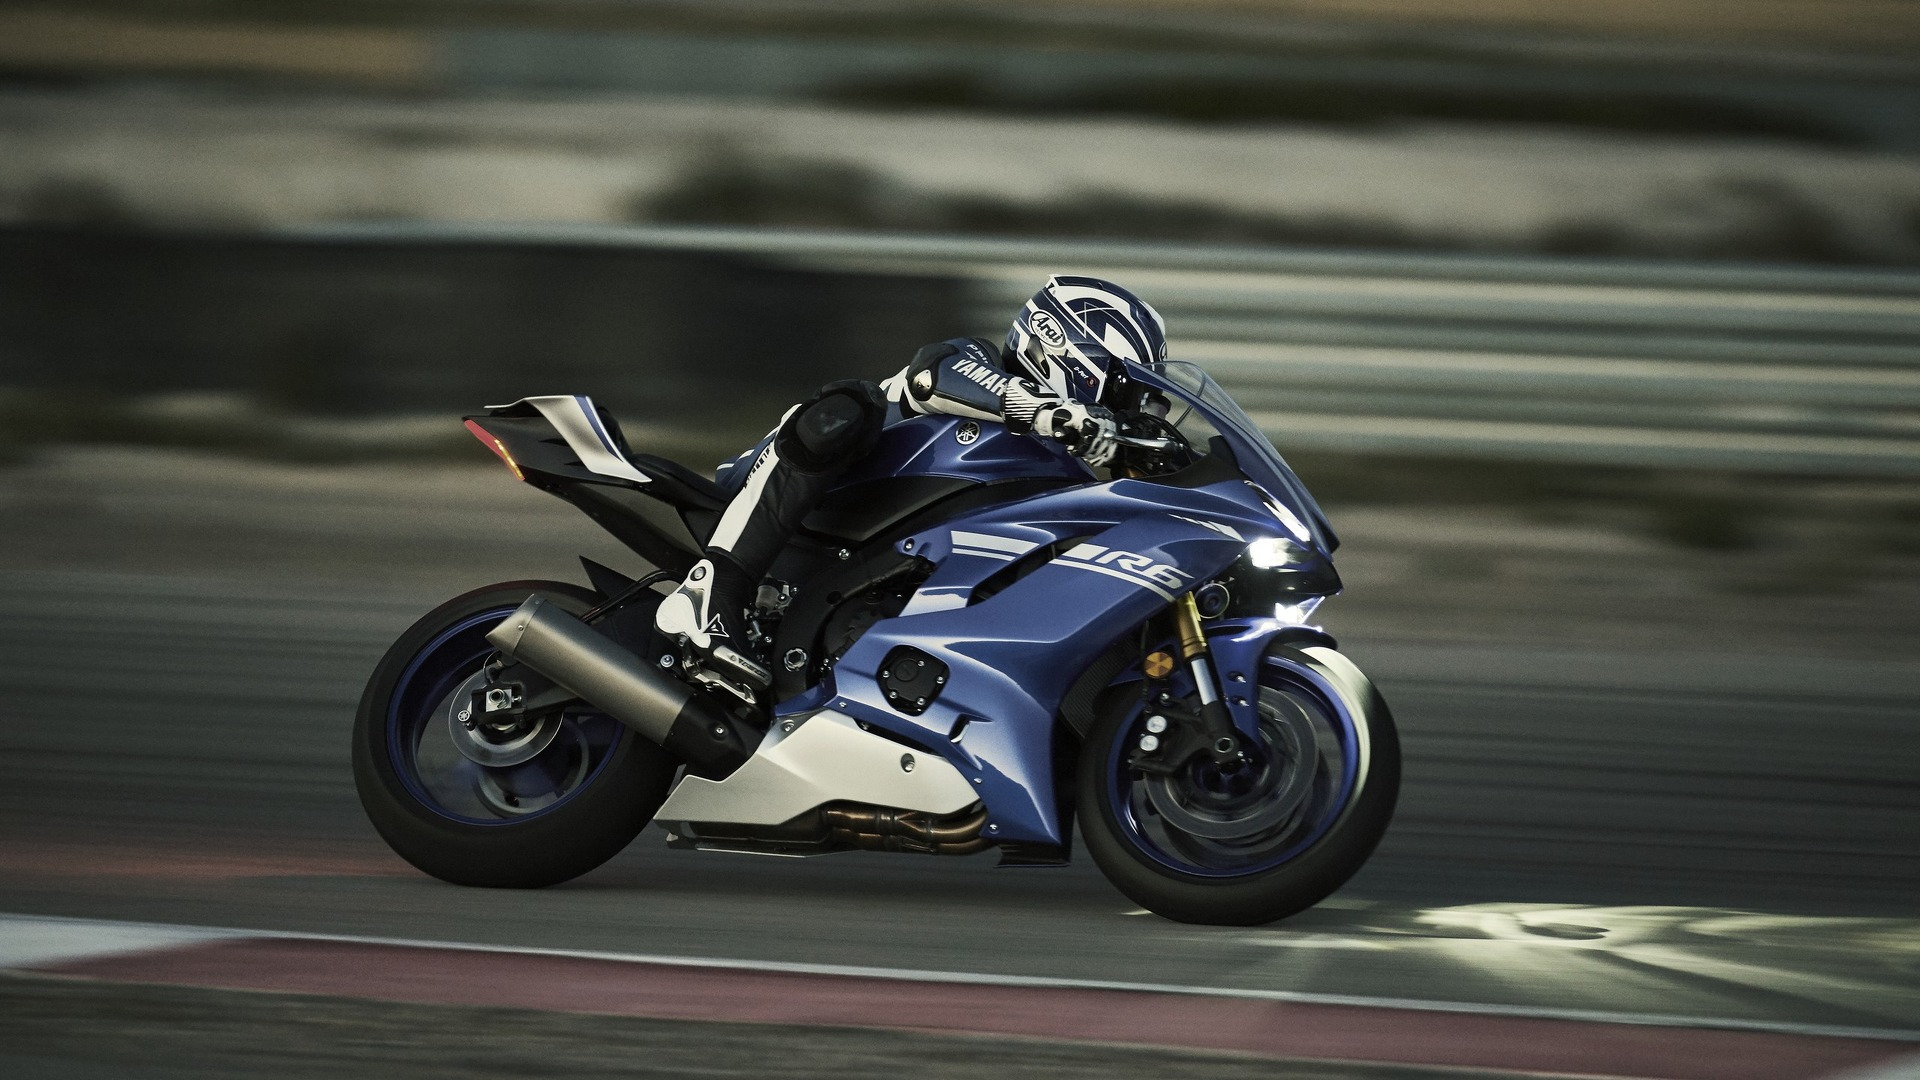 yamaha finally unveils new yzf r6